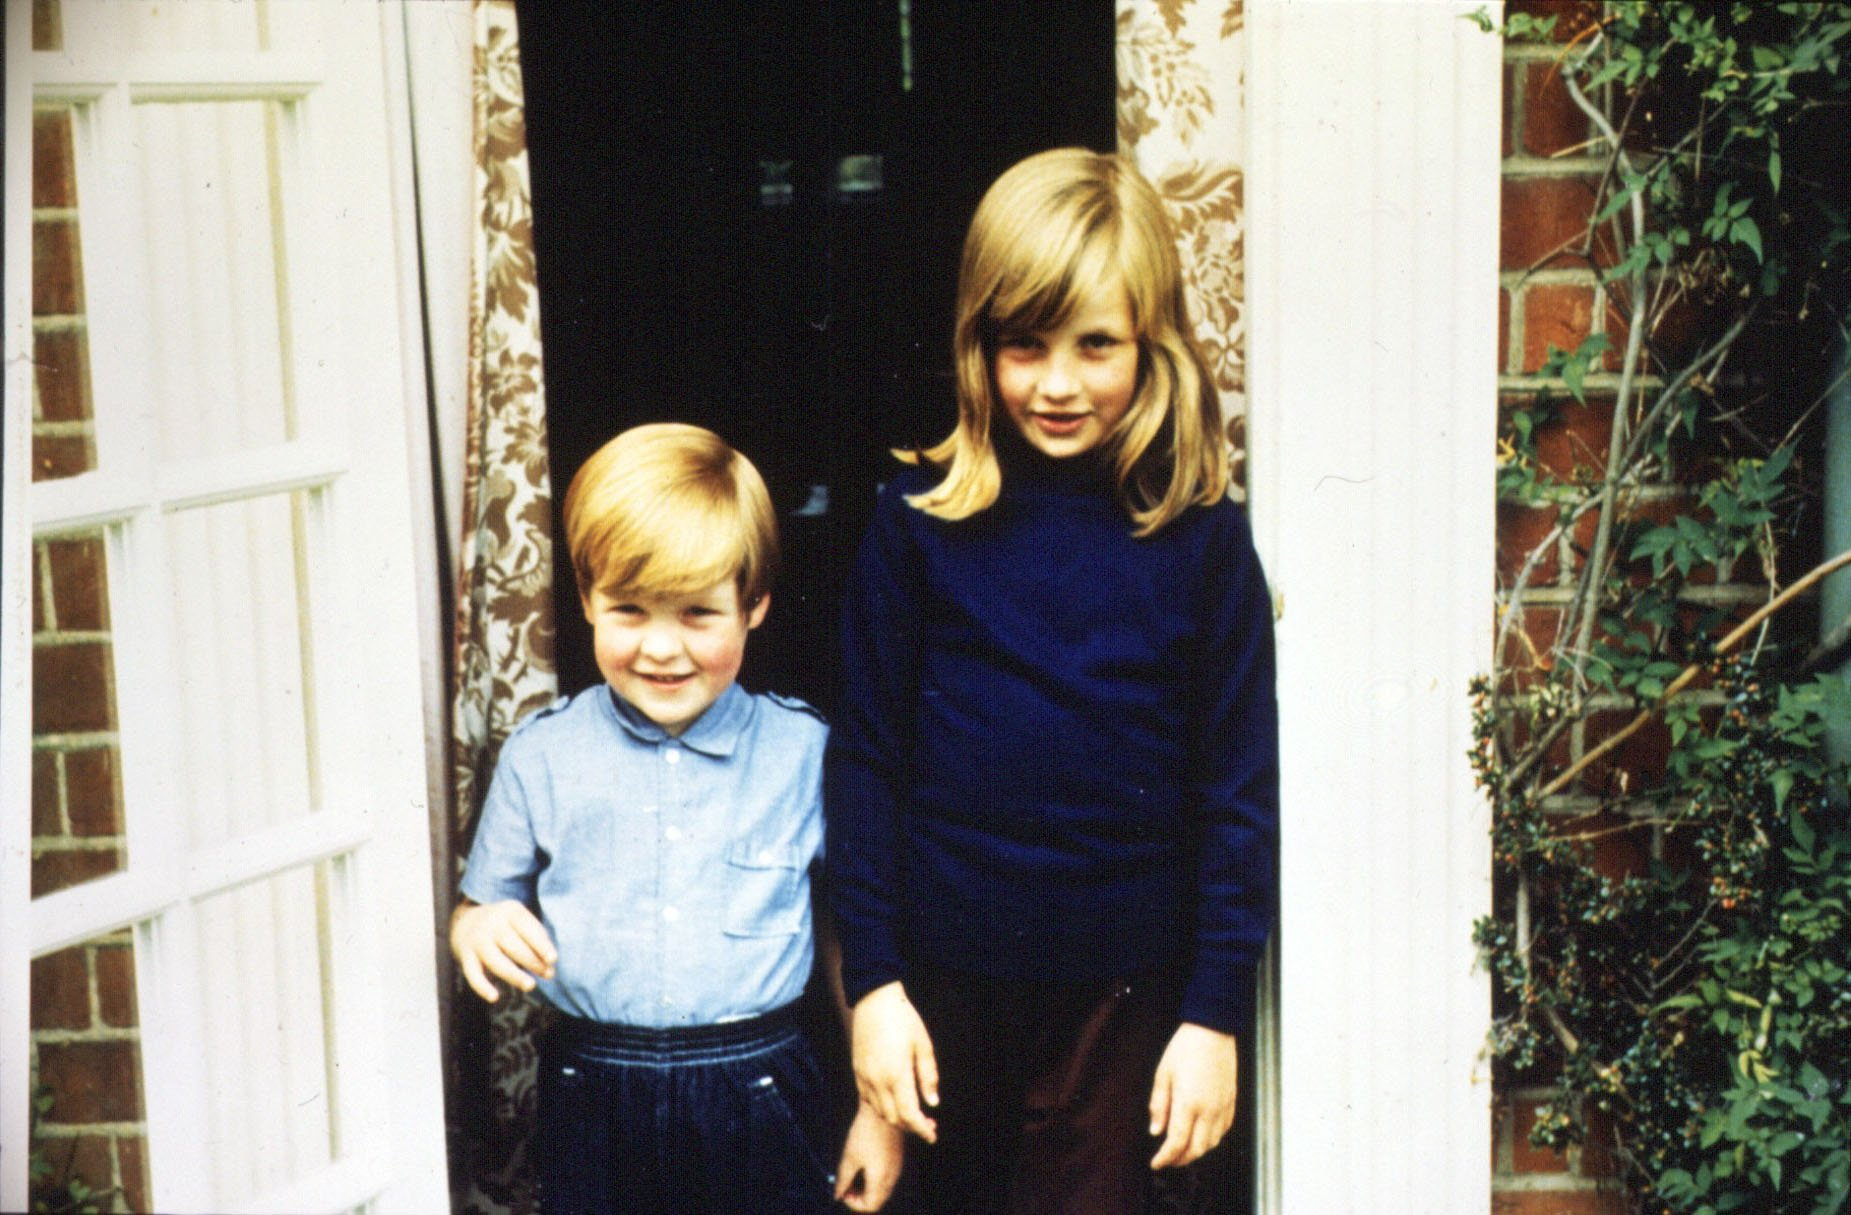 An undated photo of Diana Princess of Wales with her brother Charles Spencer in 1968 | Photo: Getty Images